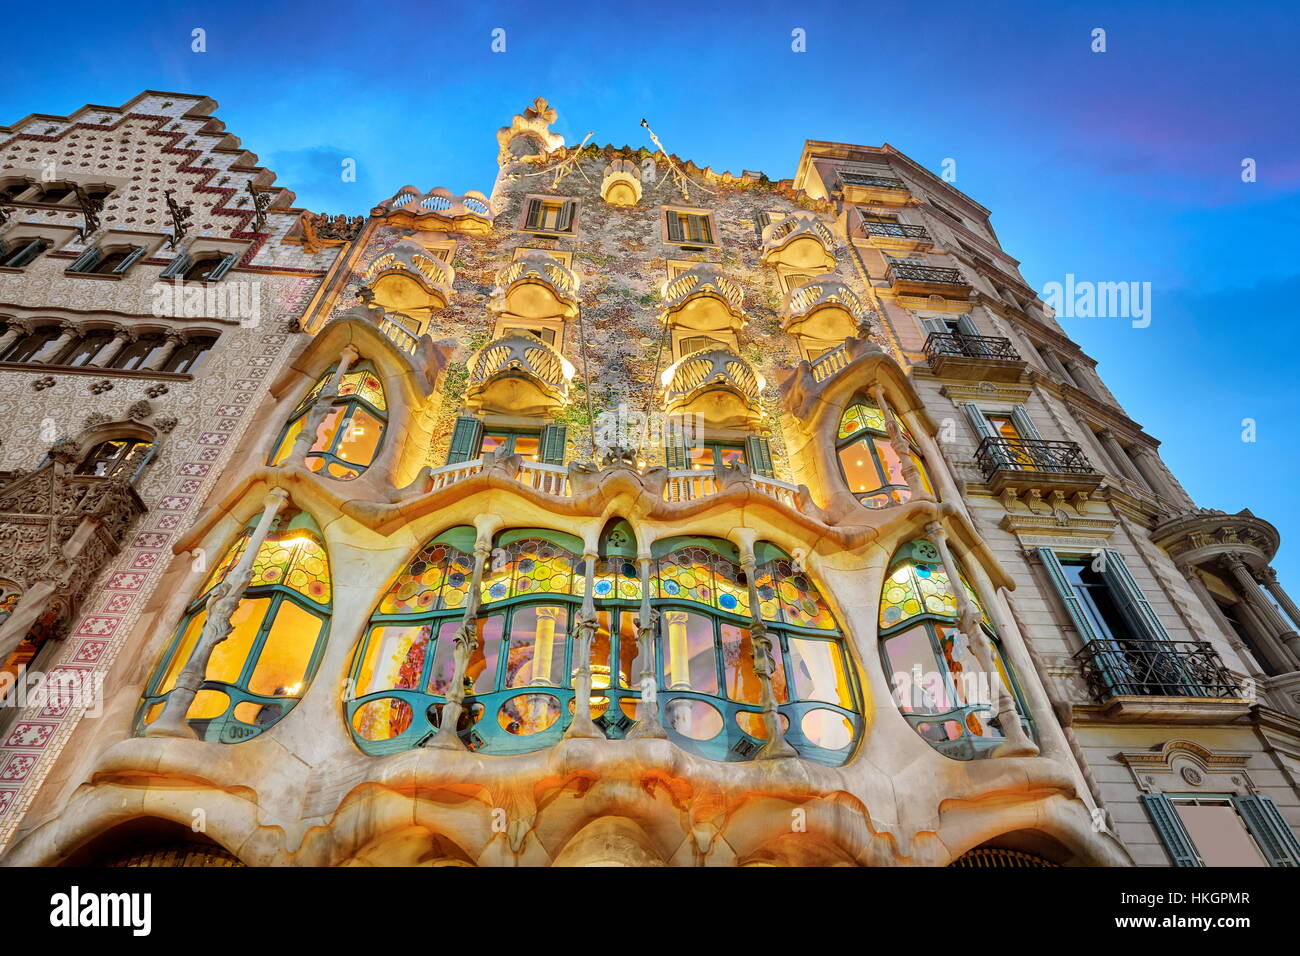 Casa Batllo house design by Antonio Gaudi at evening, Barcelona,  Spain - Stock Image